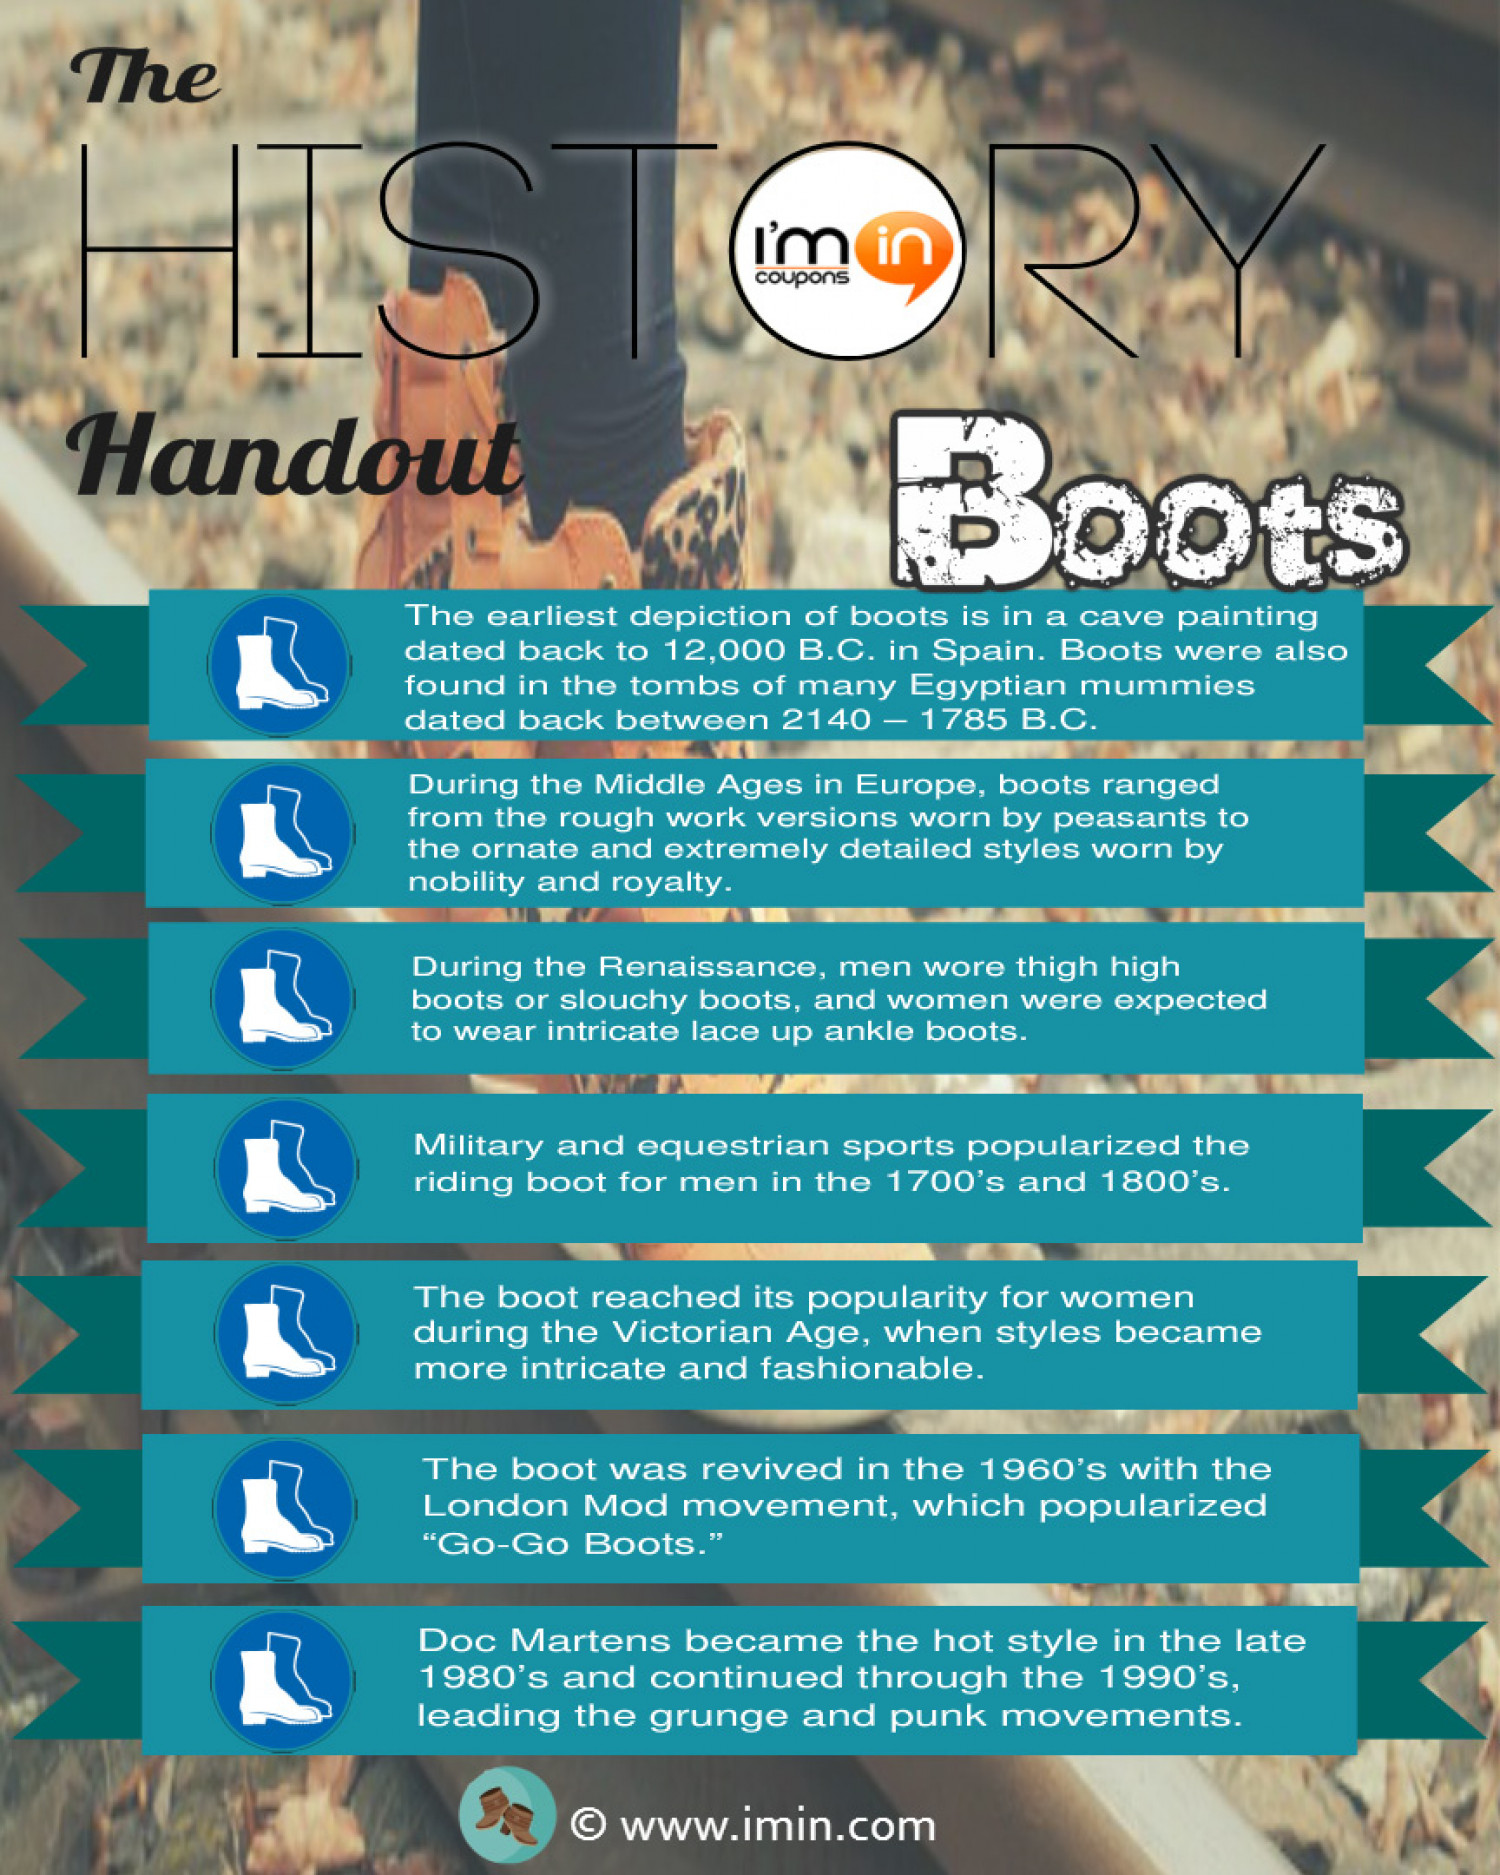 The History Handout - Boots Infographic